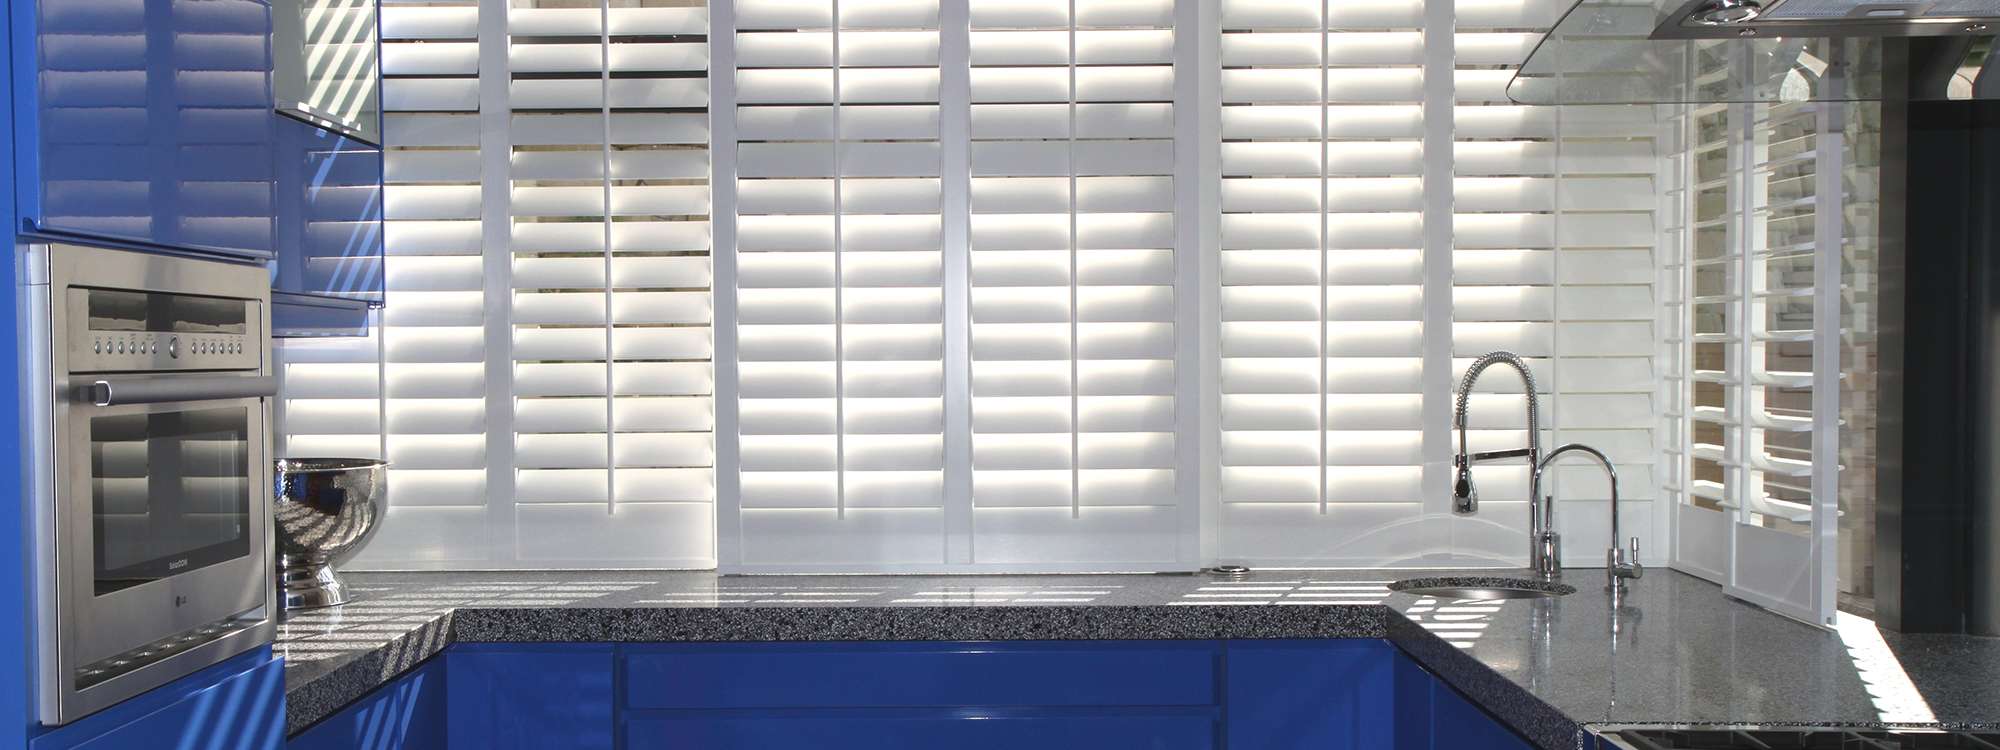 Decowood-shutters-kitchen-blue-finish-bypass